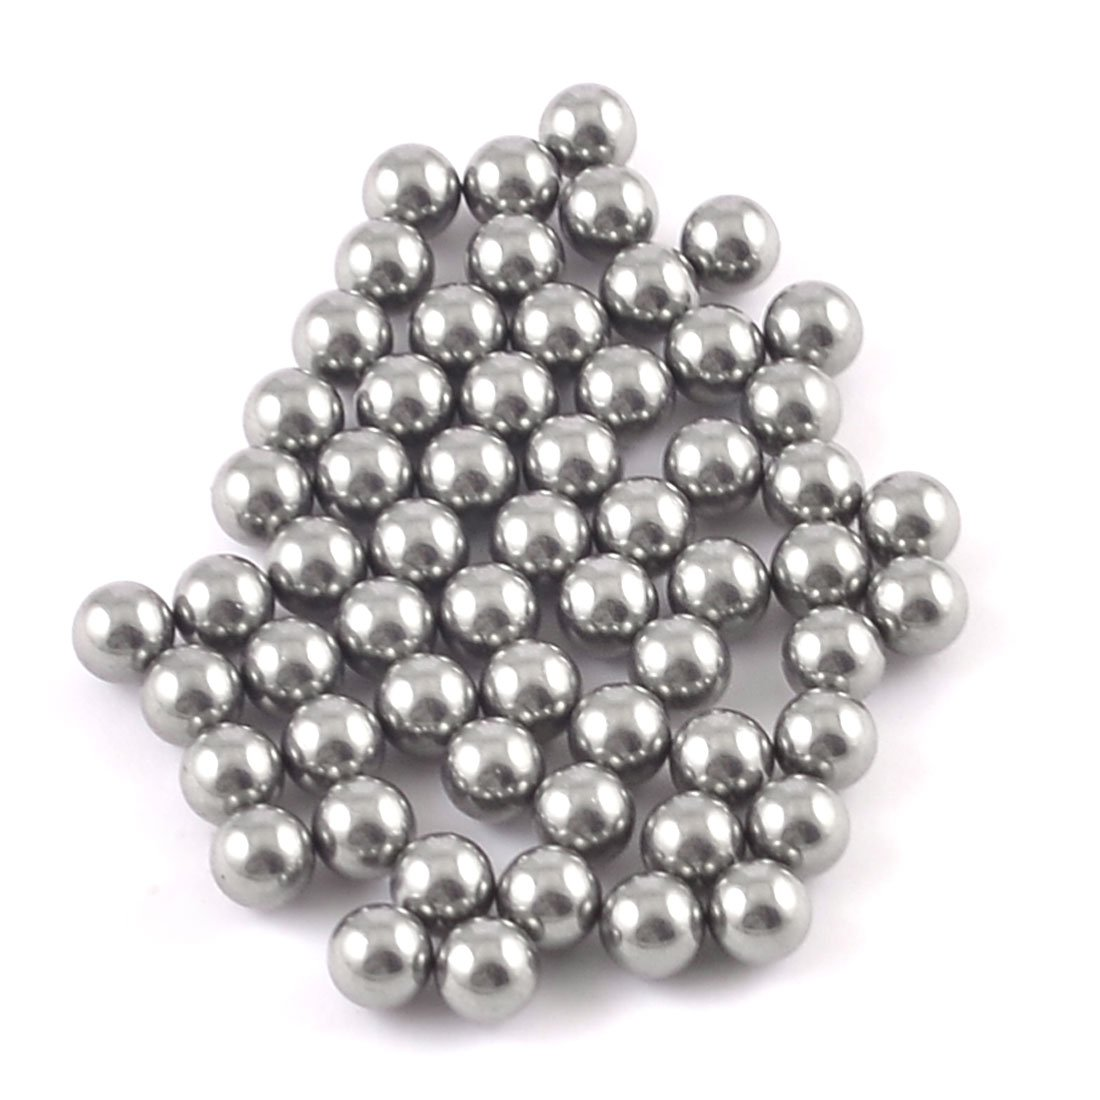 60 Pcs 4mm Dia Bicycle Steel Bearing Ball Replacement